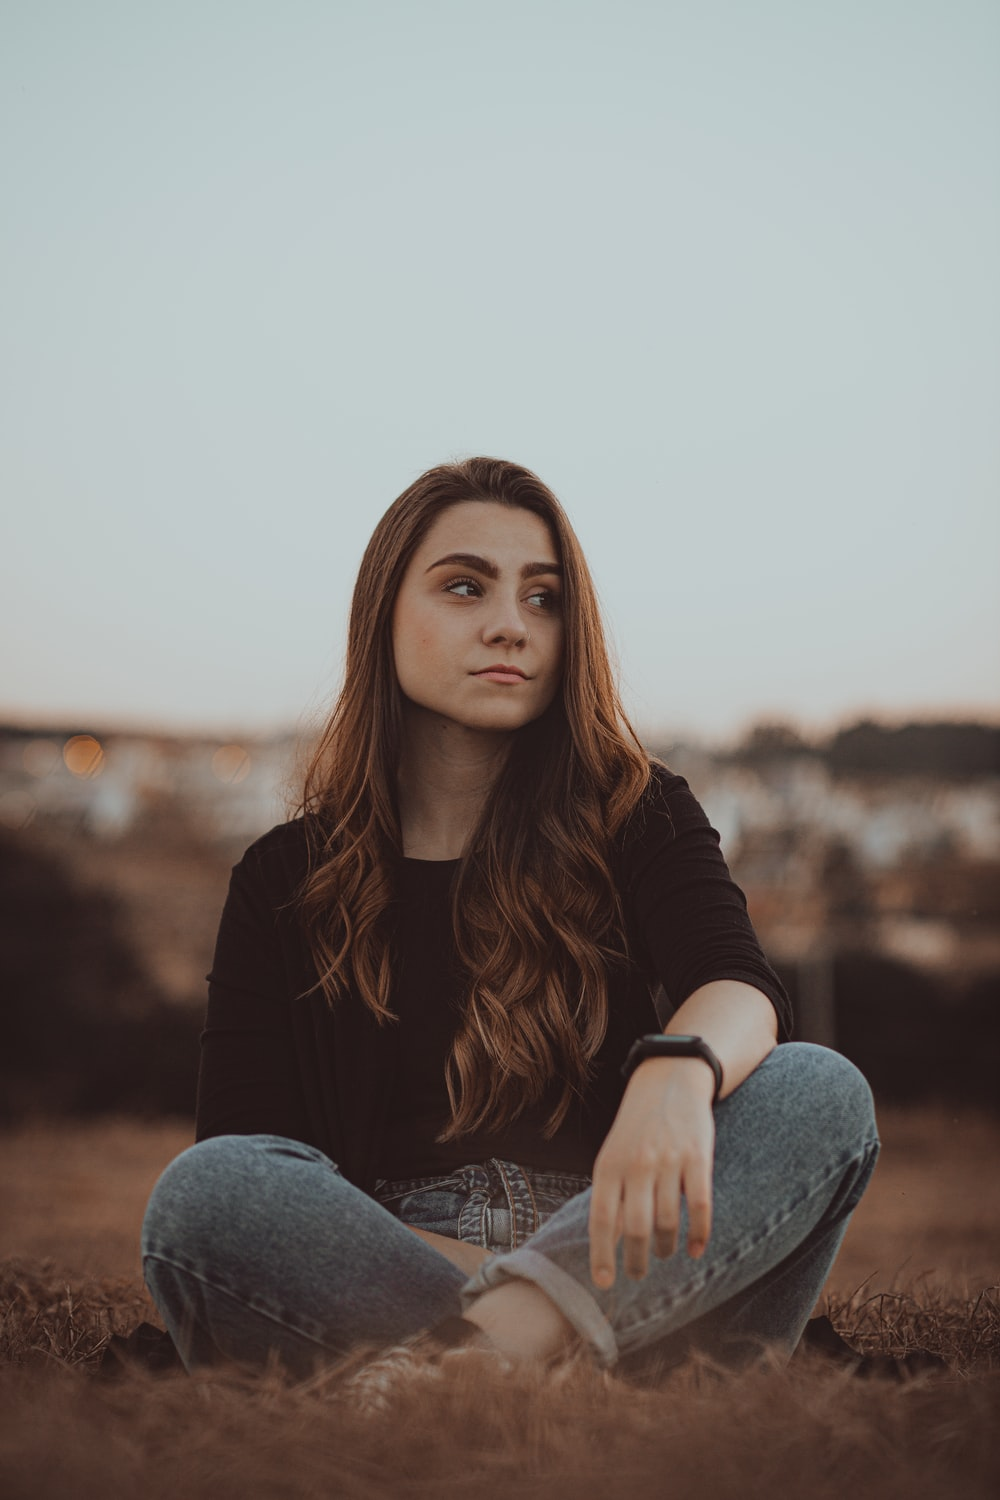 woman in black long sleeve shirt and blue denim jeans sitting on brown rock during daytime